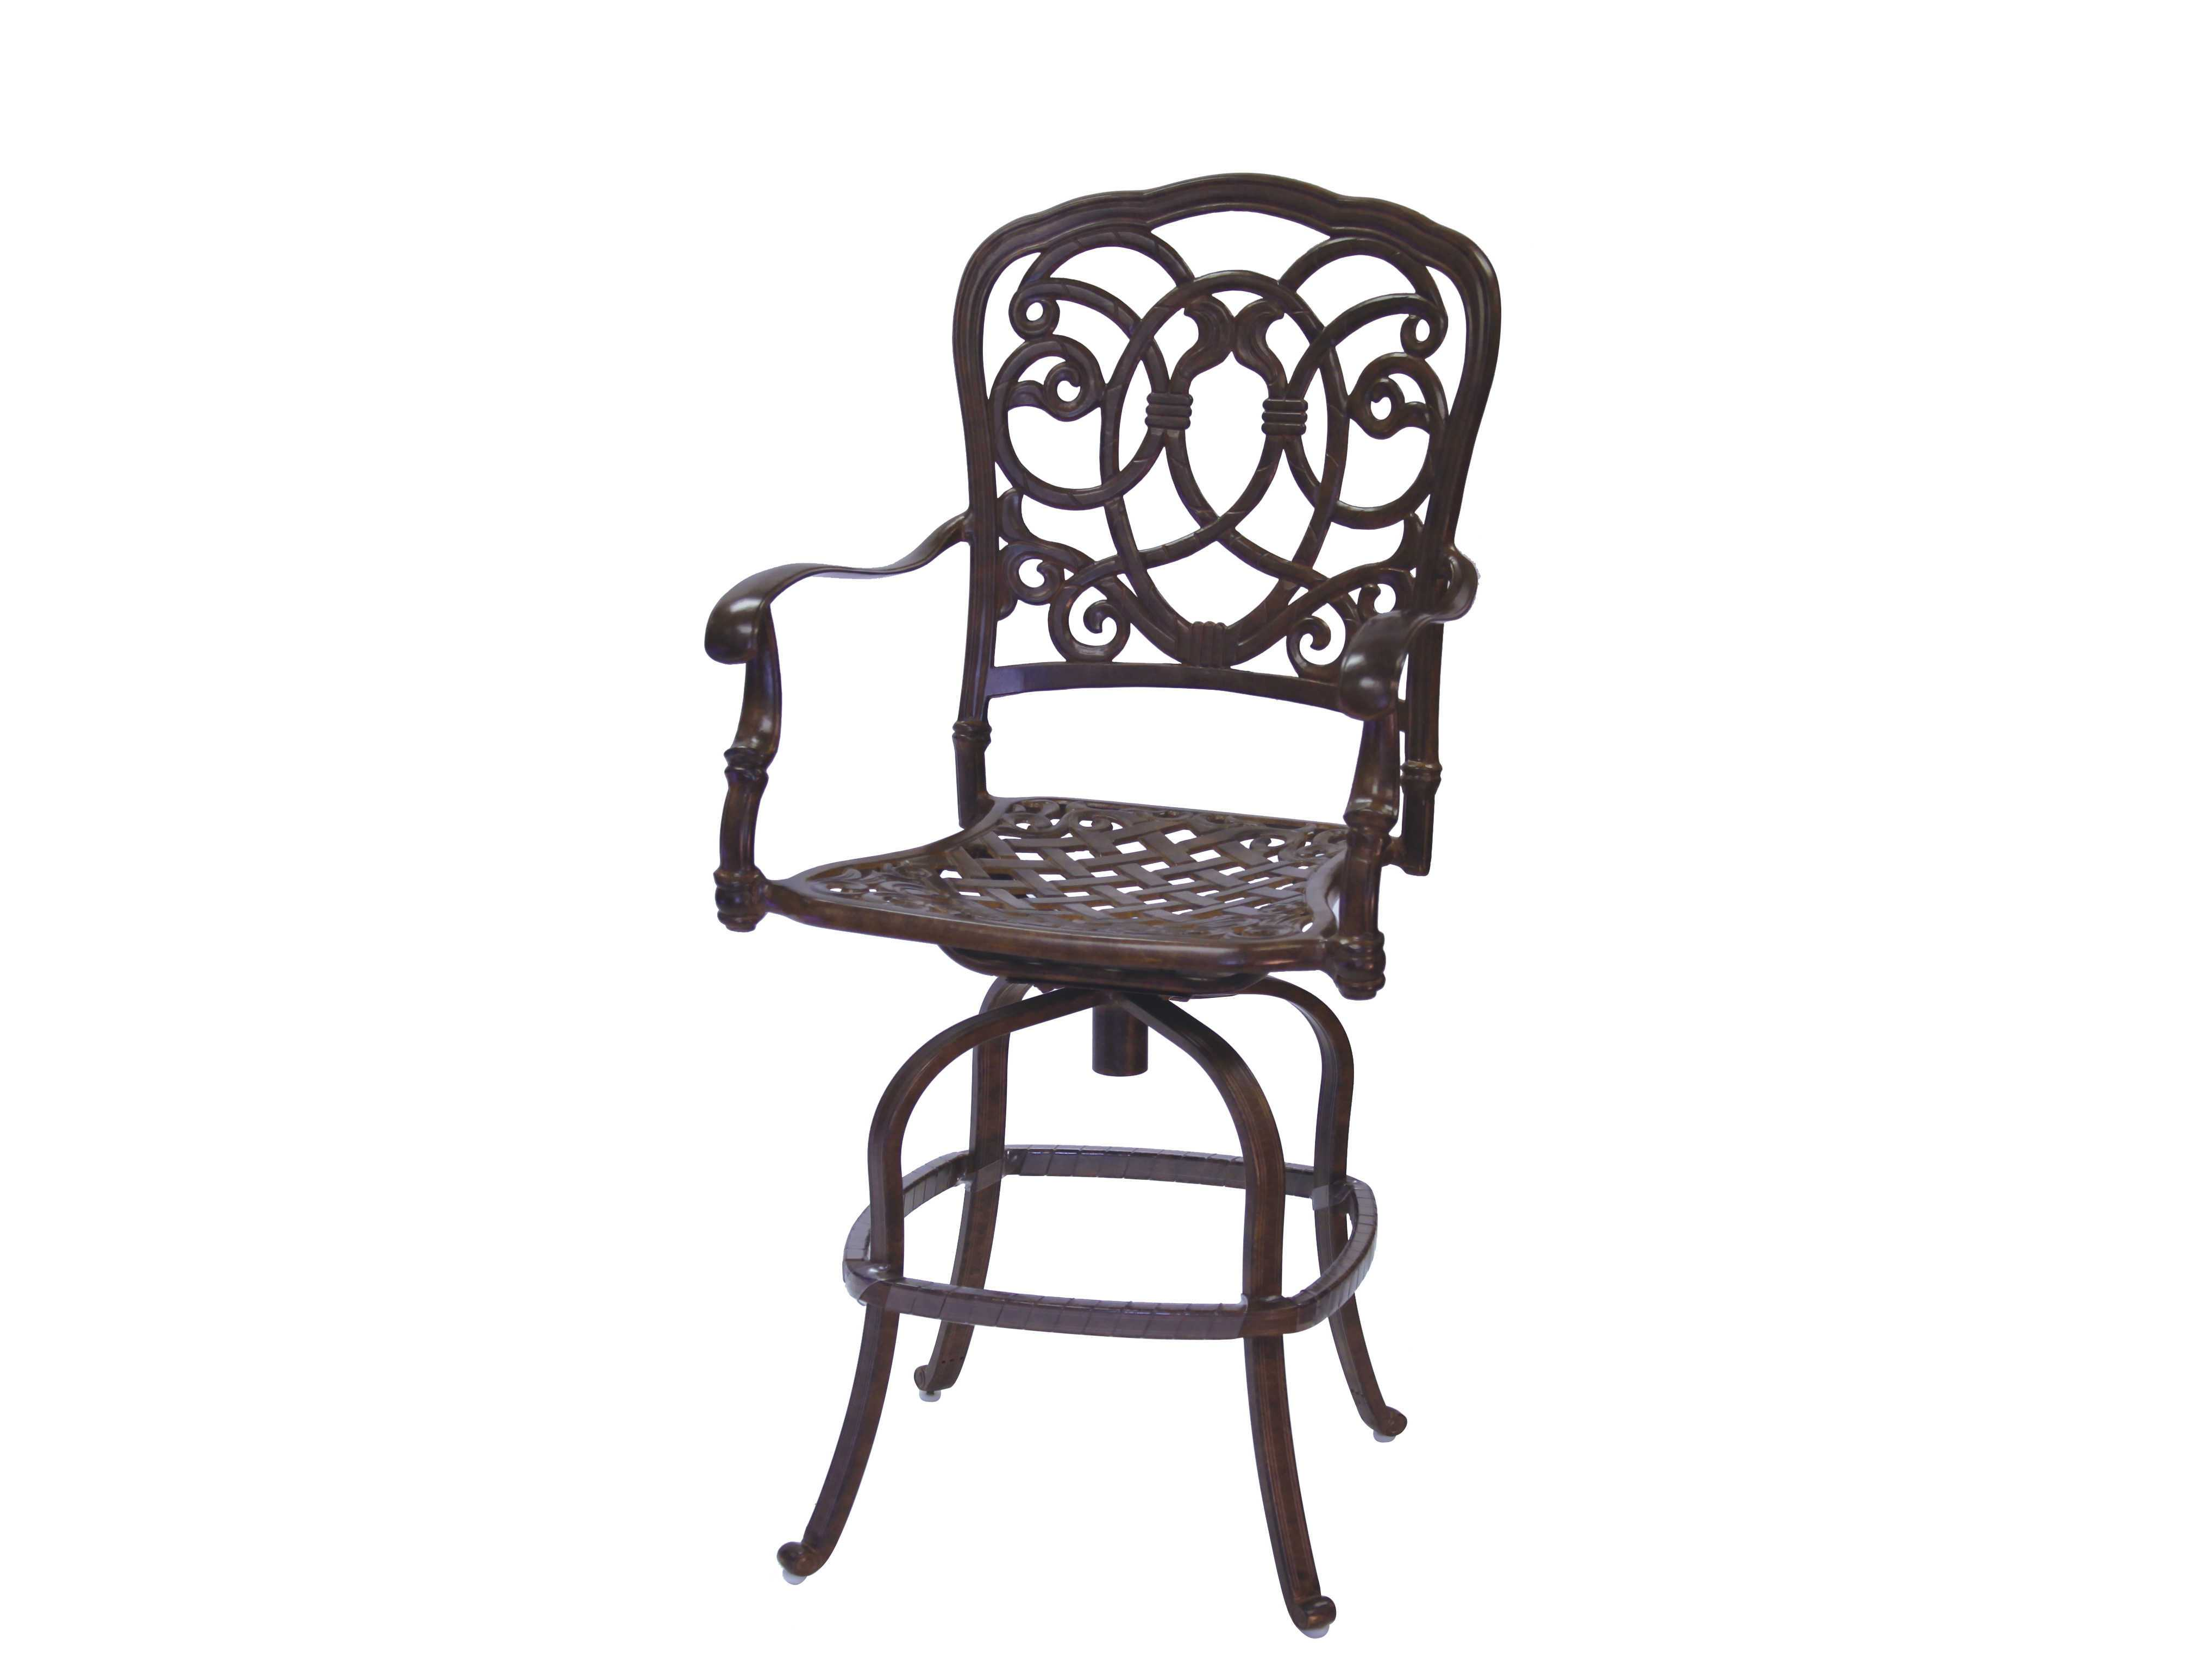 Counter Height Outdoor Dining Sets : Outdoor Living Quick Ship Florence Cast Aluminum Counter Height Set ...